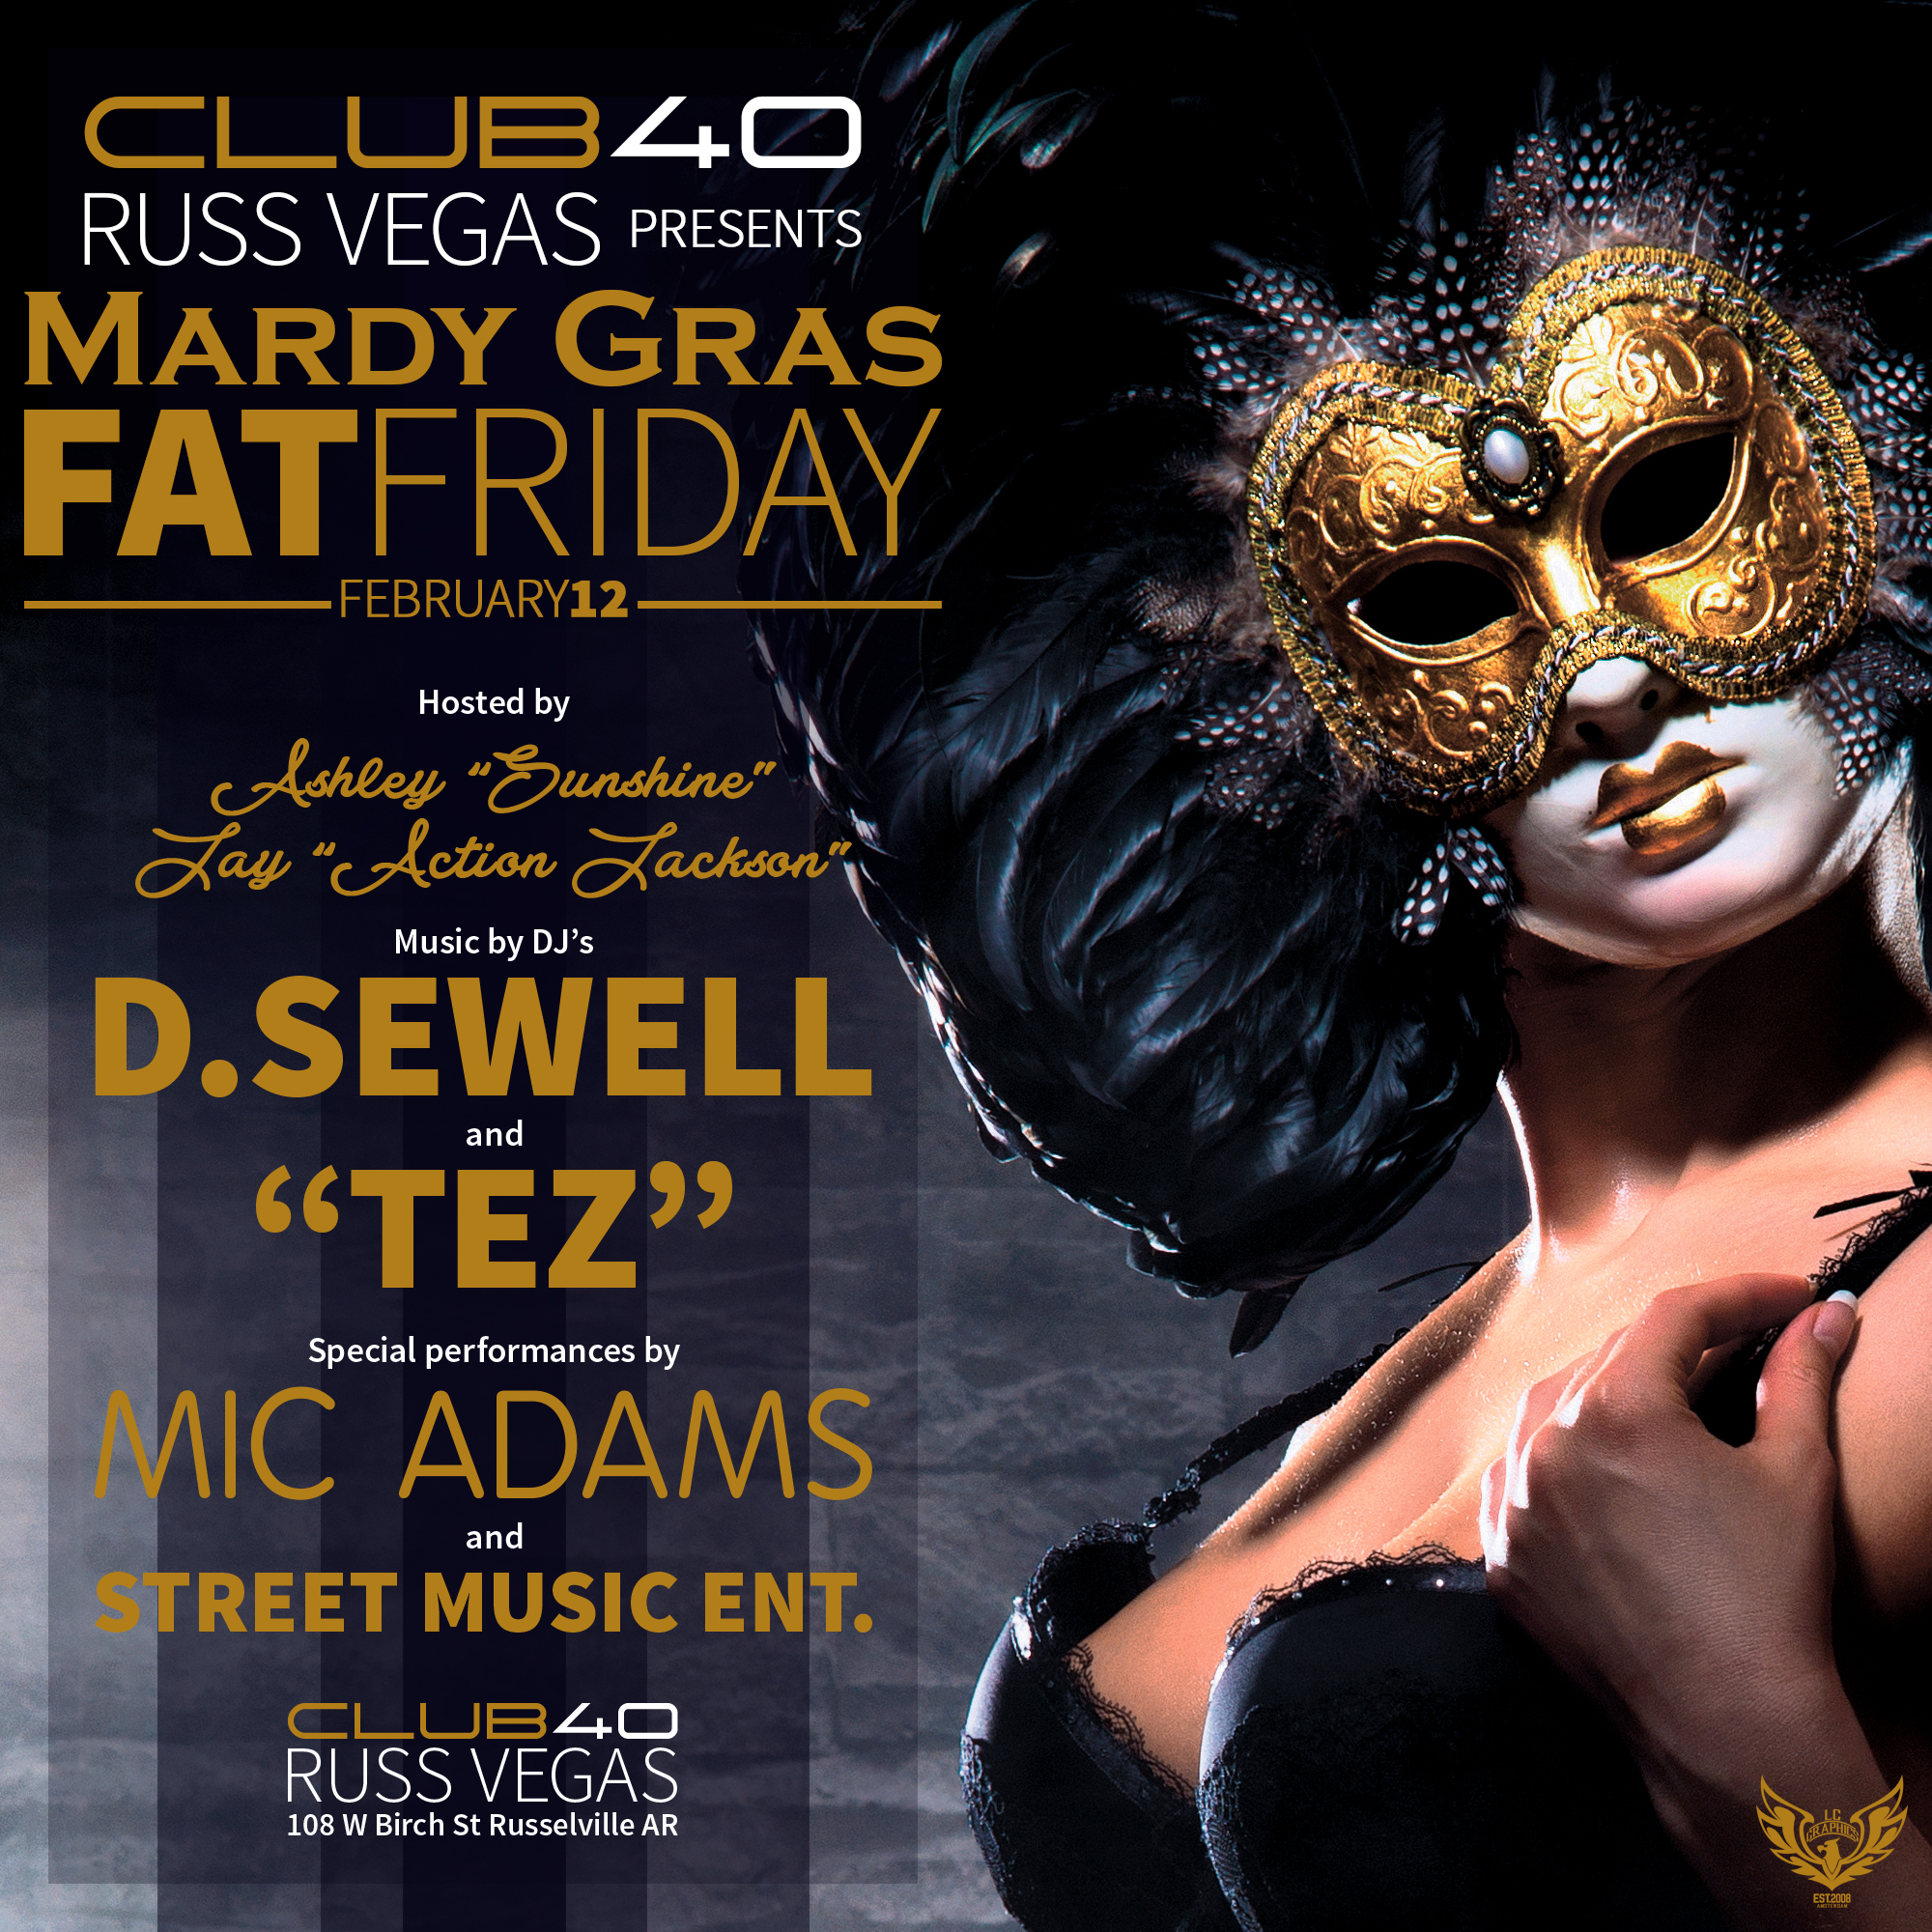 Club 40 - Mardy Gras Fat Friday (special live performance by Mic Adams) flyer